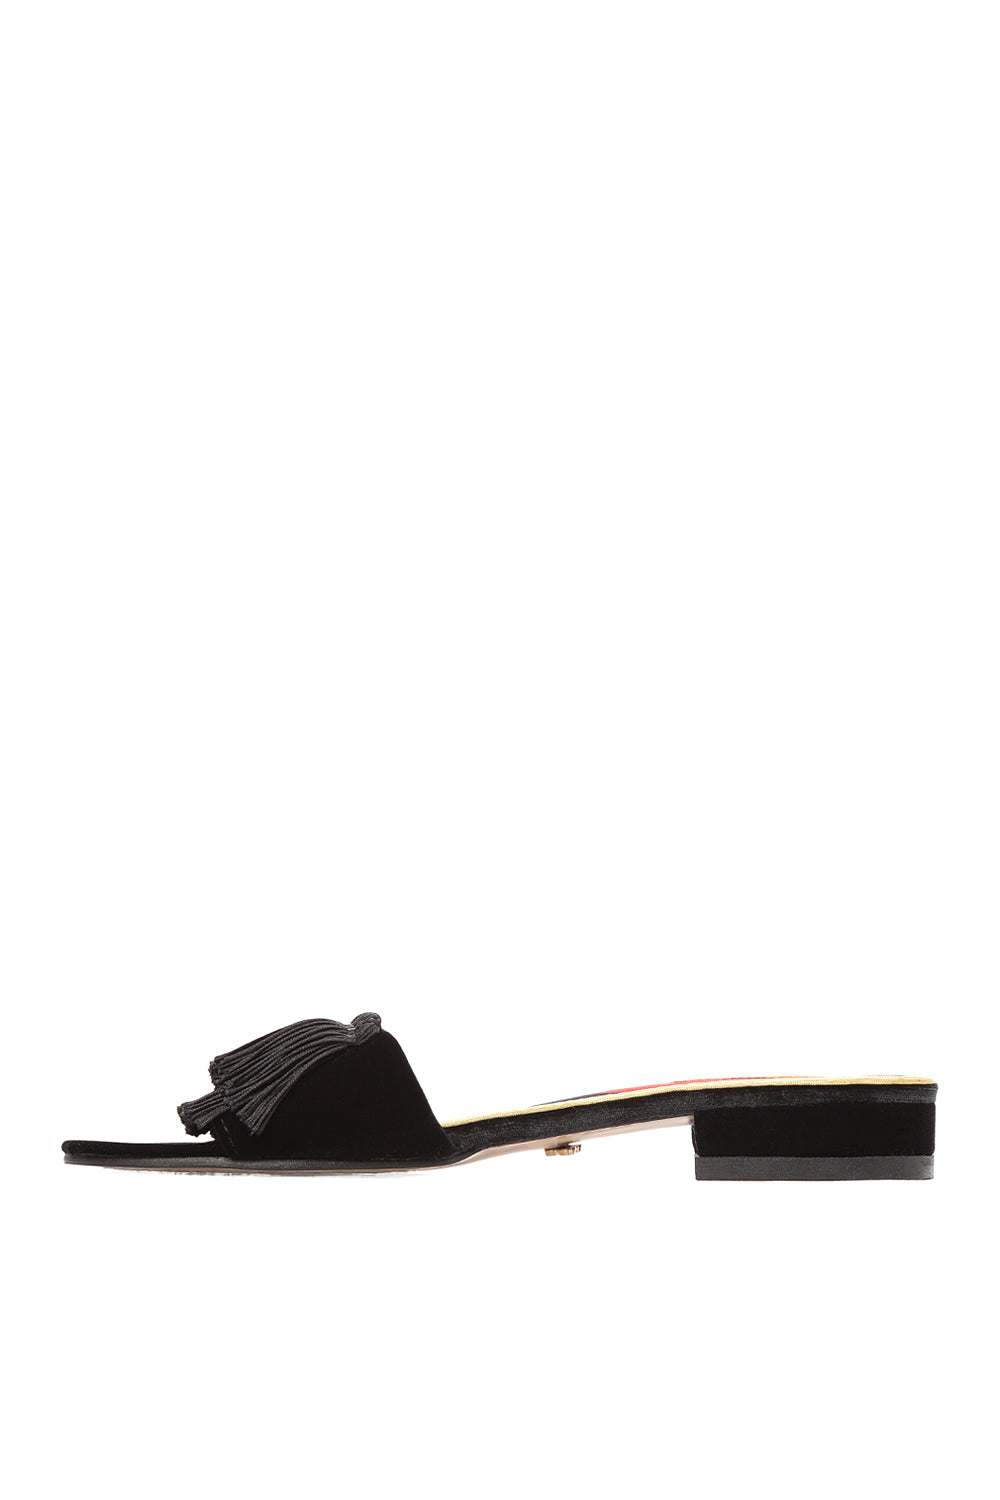 Black leather mules